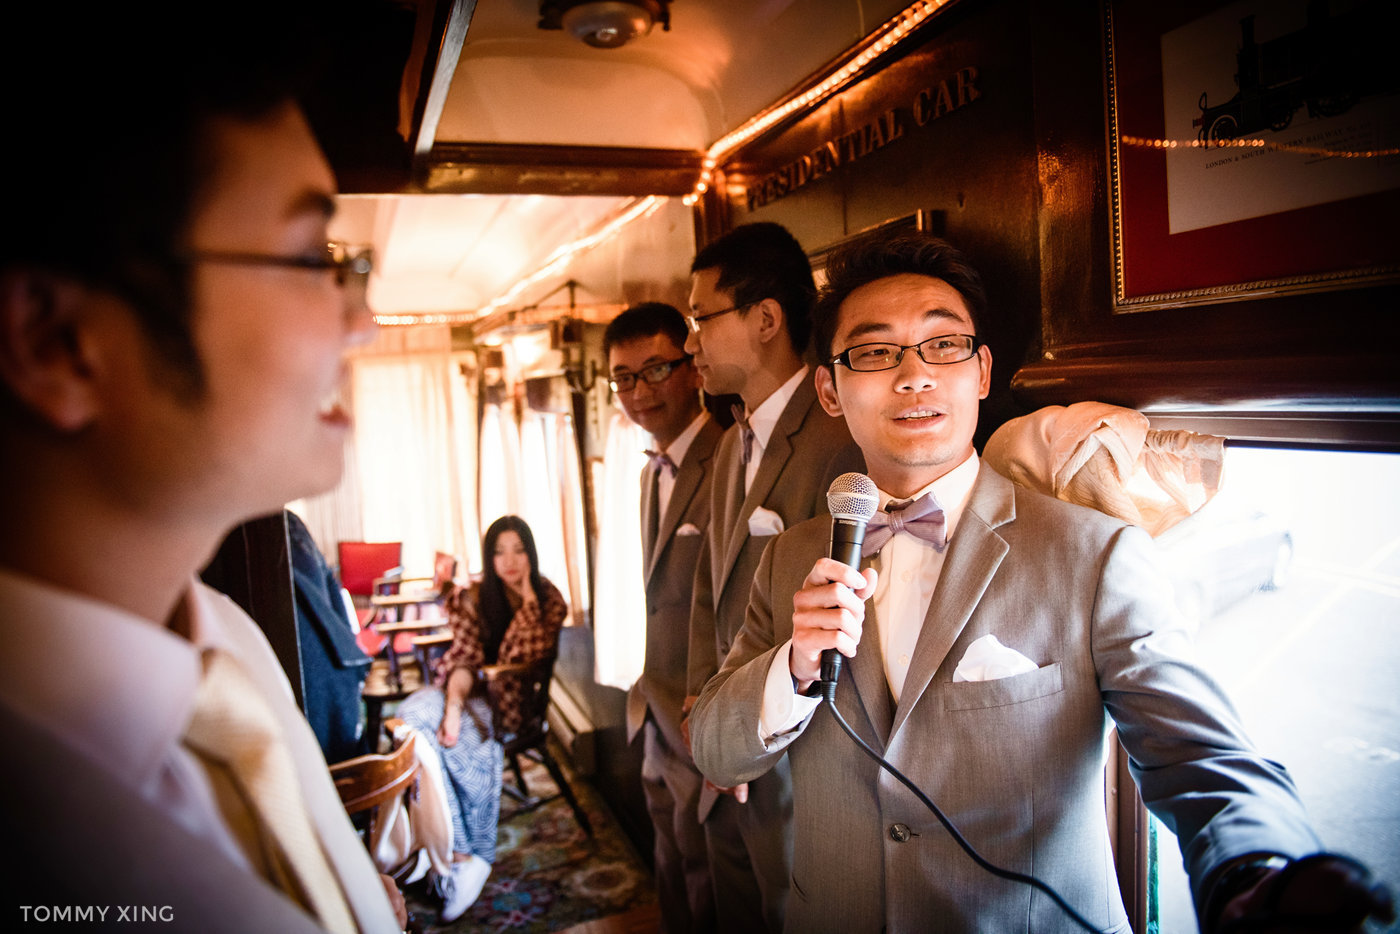 Seattle Wedding and pre wedding Los Angeles Tommy Xing Photography 西雅图洛杉矶旧金山婚礼婚纱照摄影师 176.jpg